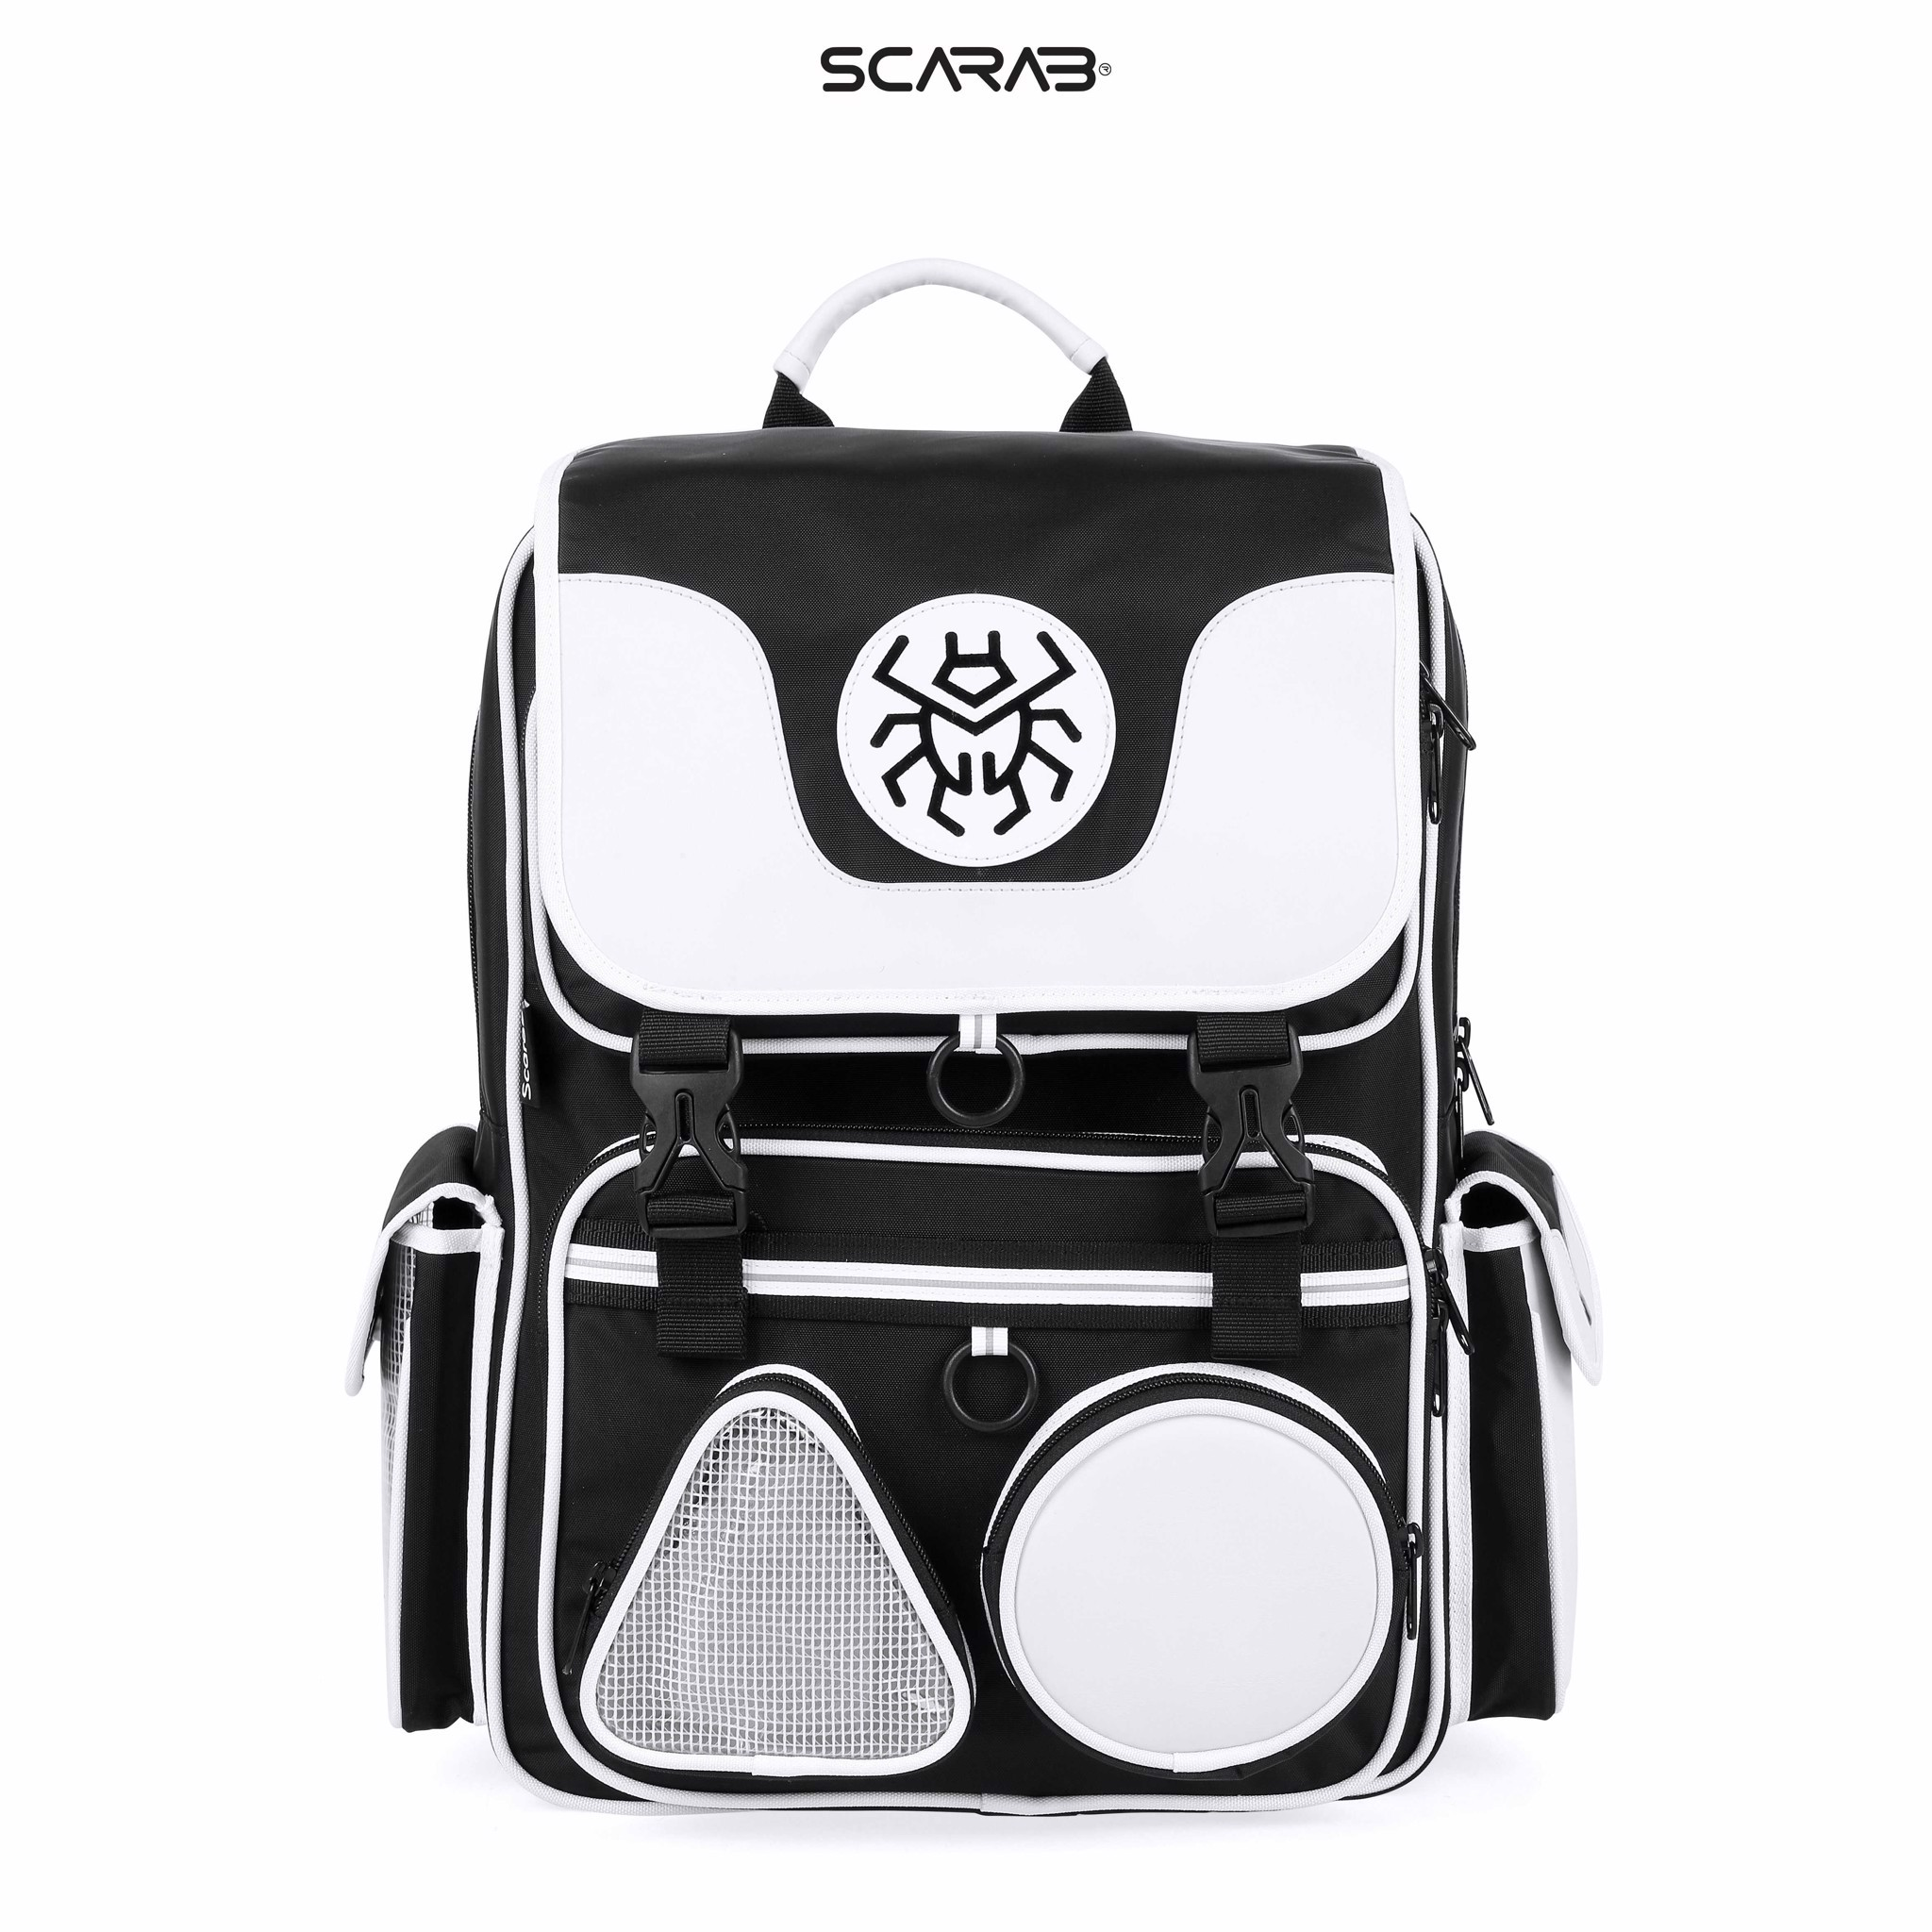 SOLID™ SHAPES BACKPACK